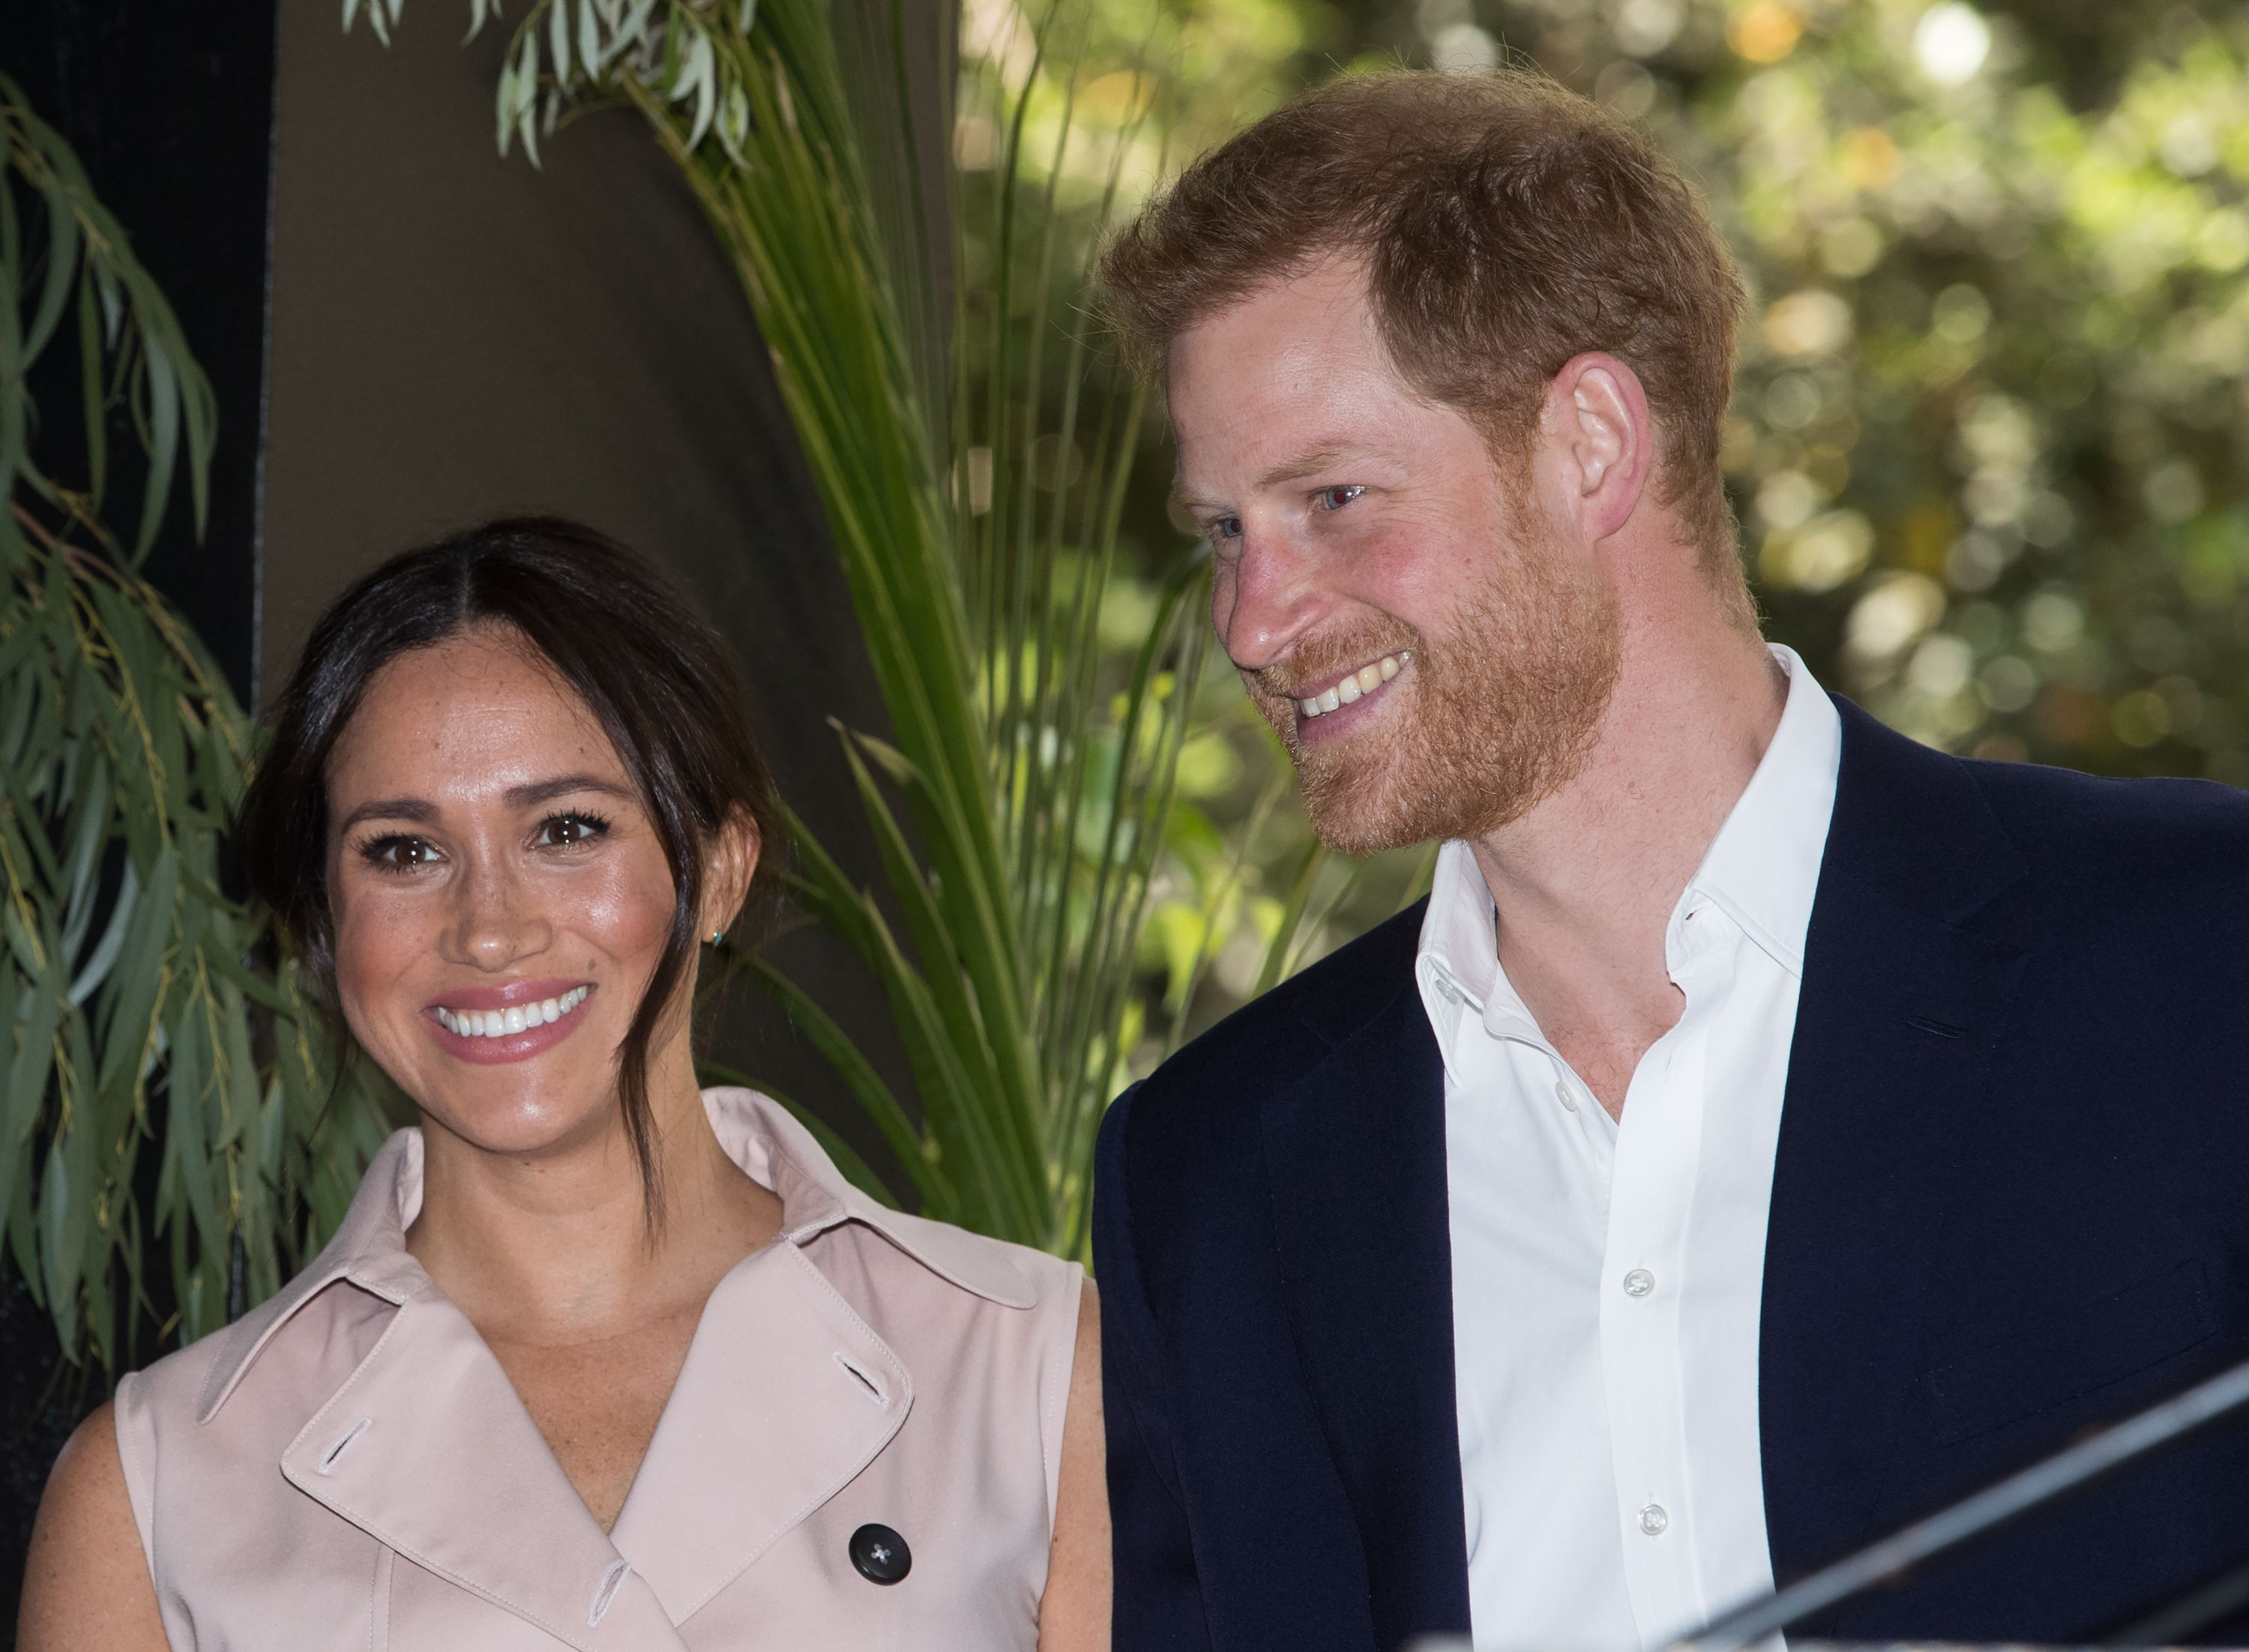 Sussex Fans Launch Touching Campaign to Plant 10,000 Trees in Harry's and Meghan's Names